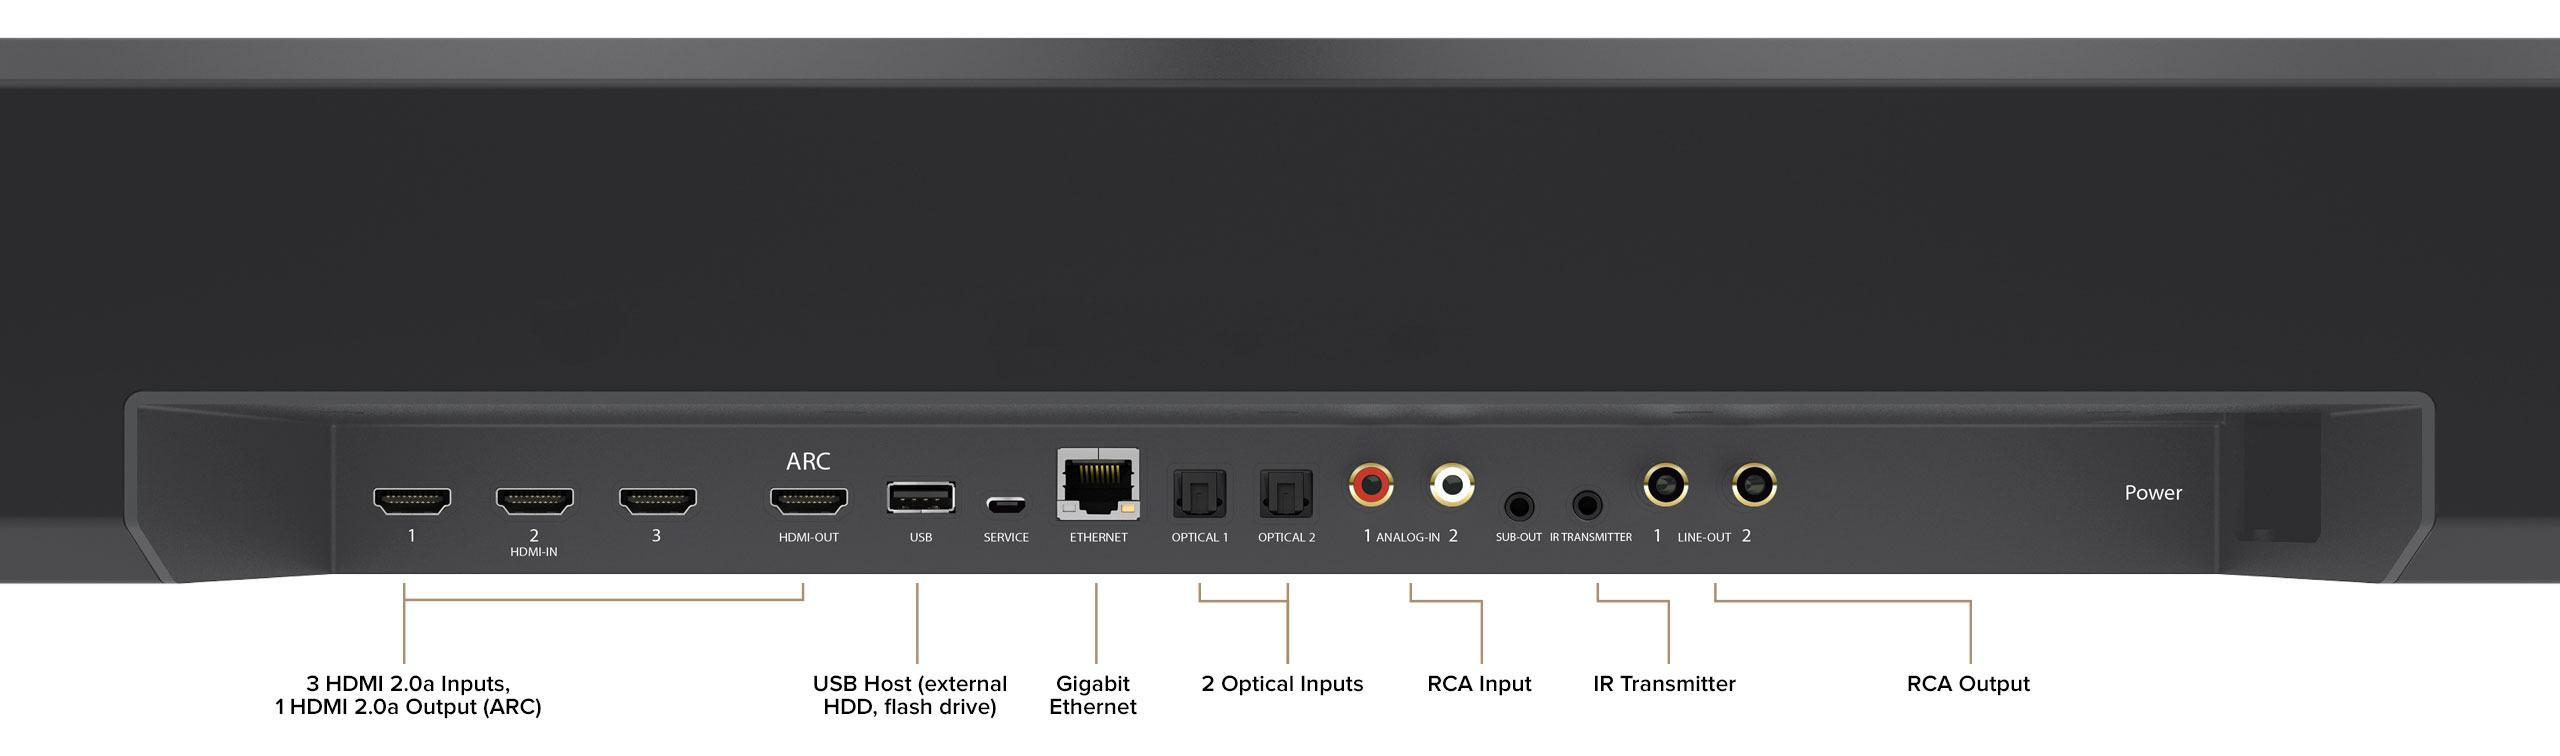 Creative X Fi Sonic Carrier The Ultimate Upgrade For Your Home Xbox 360 Automatically Resets With Hdmi Switches Page 10 Avs Forum An Expansive Array Of Connectivity